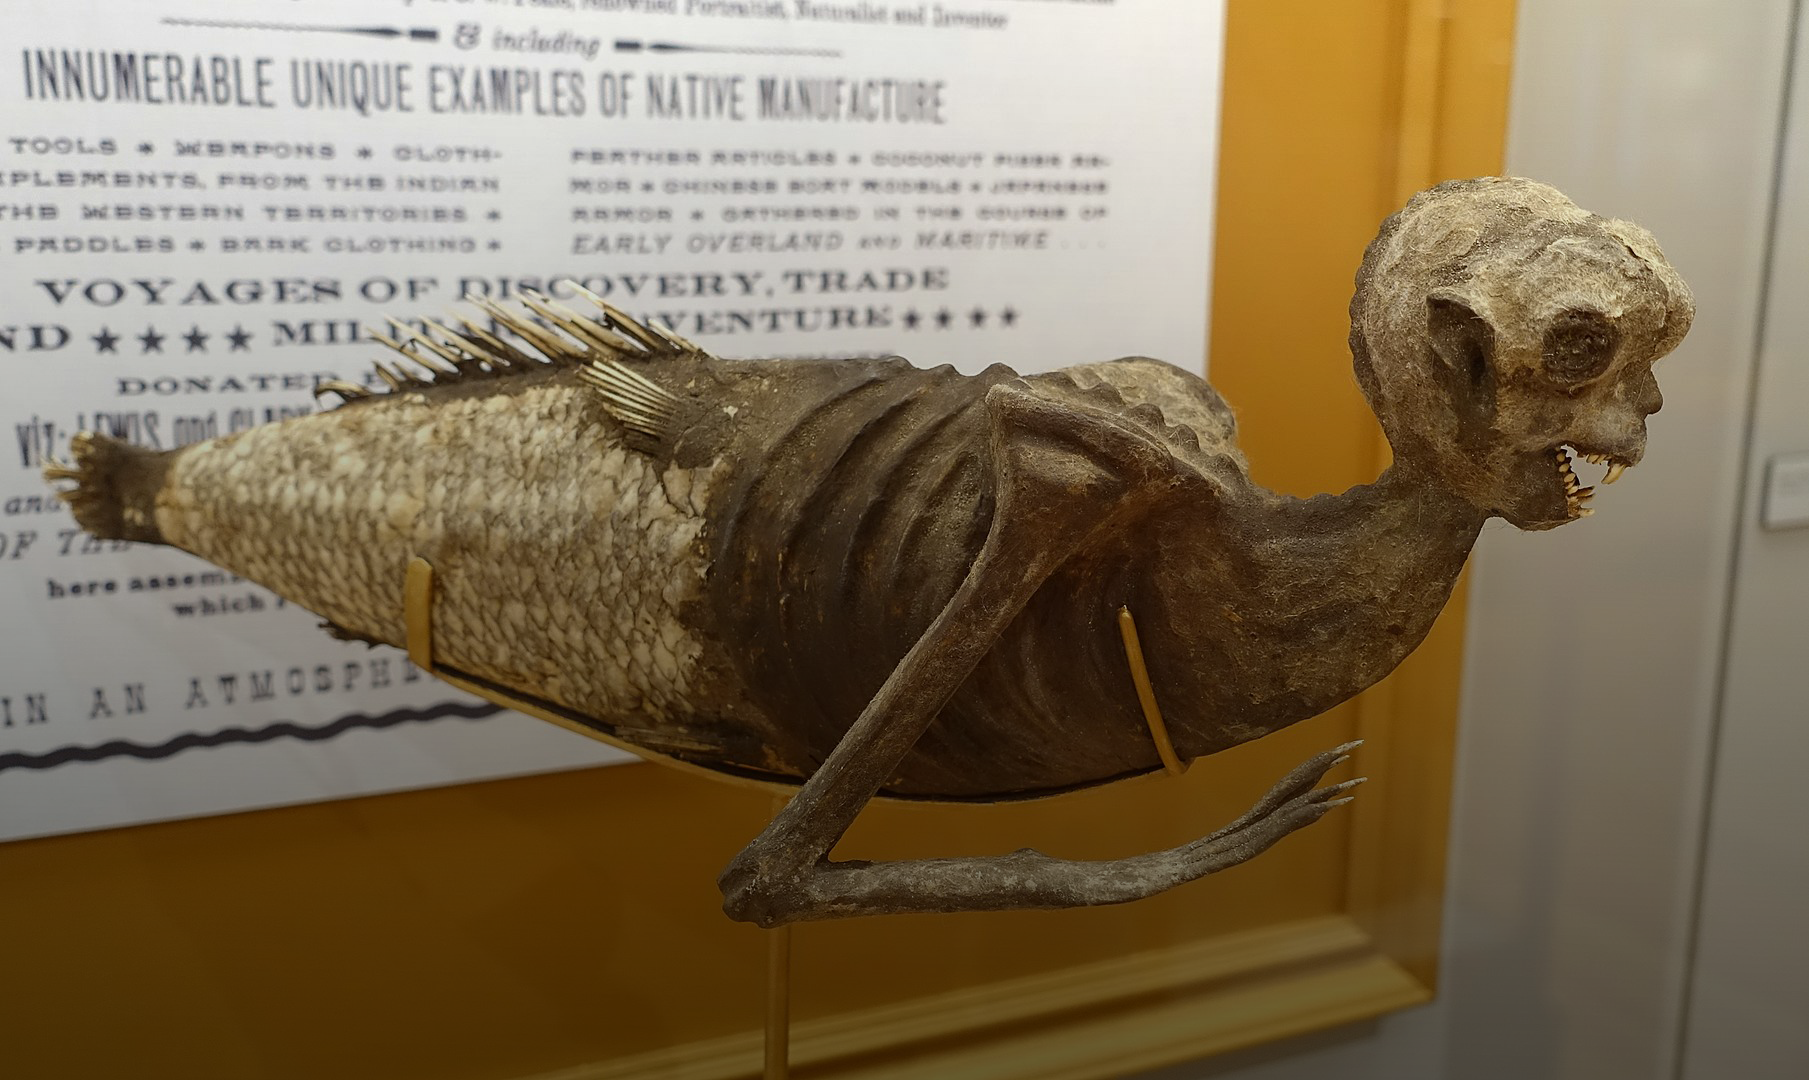 Feejee Mermaid, shown in P.T. Barnum's American Museum, 1842, as leased from Moses Kimball of the Boston Museum, papier-mache - Peabody Museum, Harvard University. By Daderot, Public Domain. https://commons.wikimedia.org/w/index.php?curid=69554826